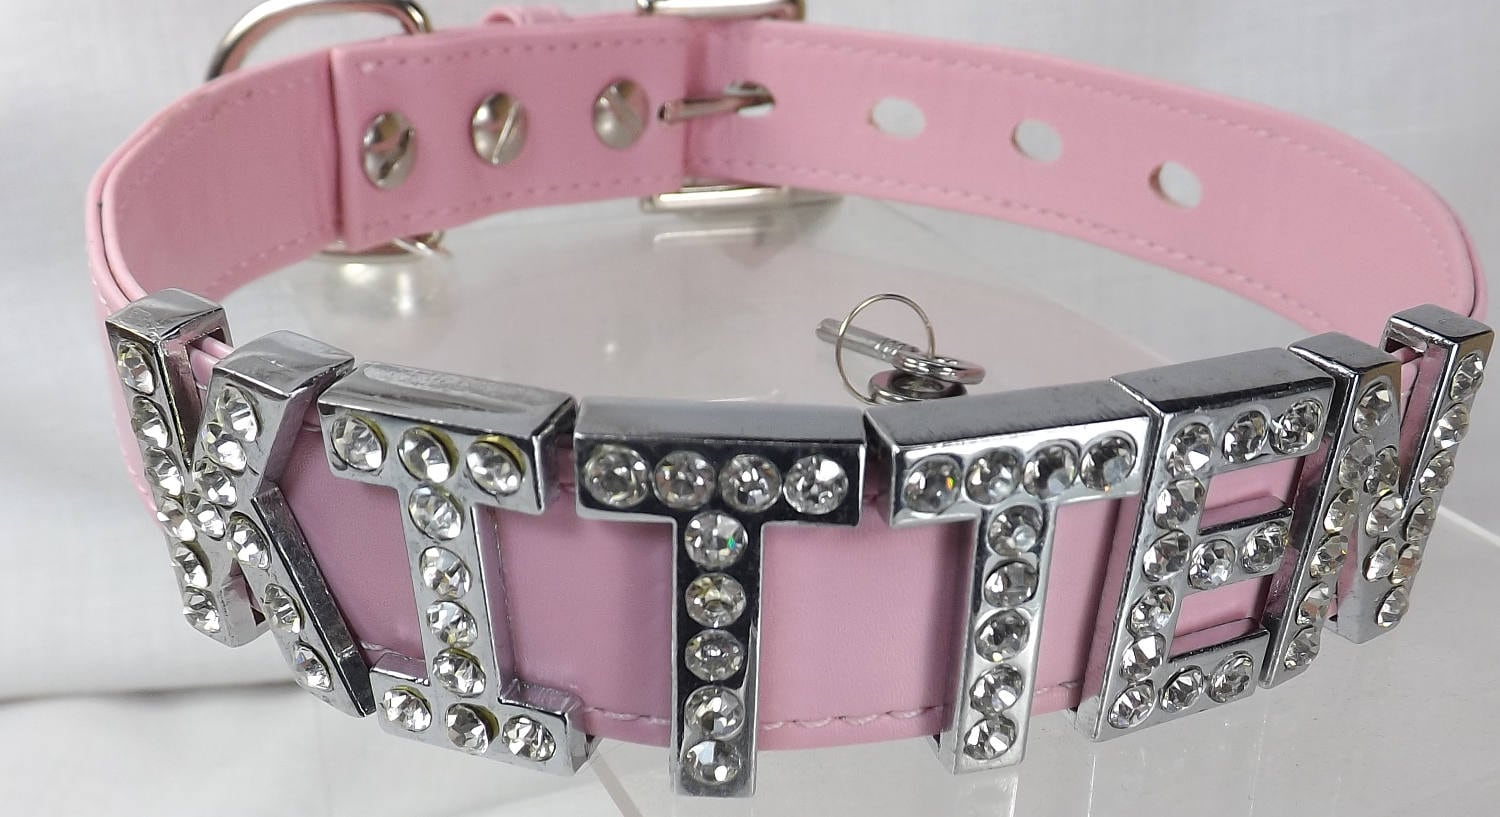 kitten play collar bdsm locking slave collar with lock Rhinestone letters ddlg pet play collar submissive collar kitten choker - product images  of